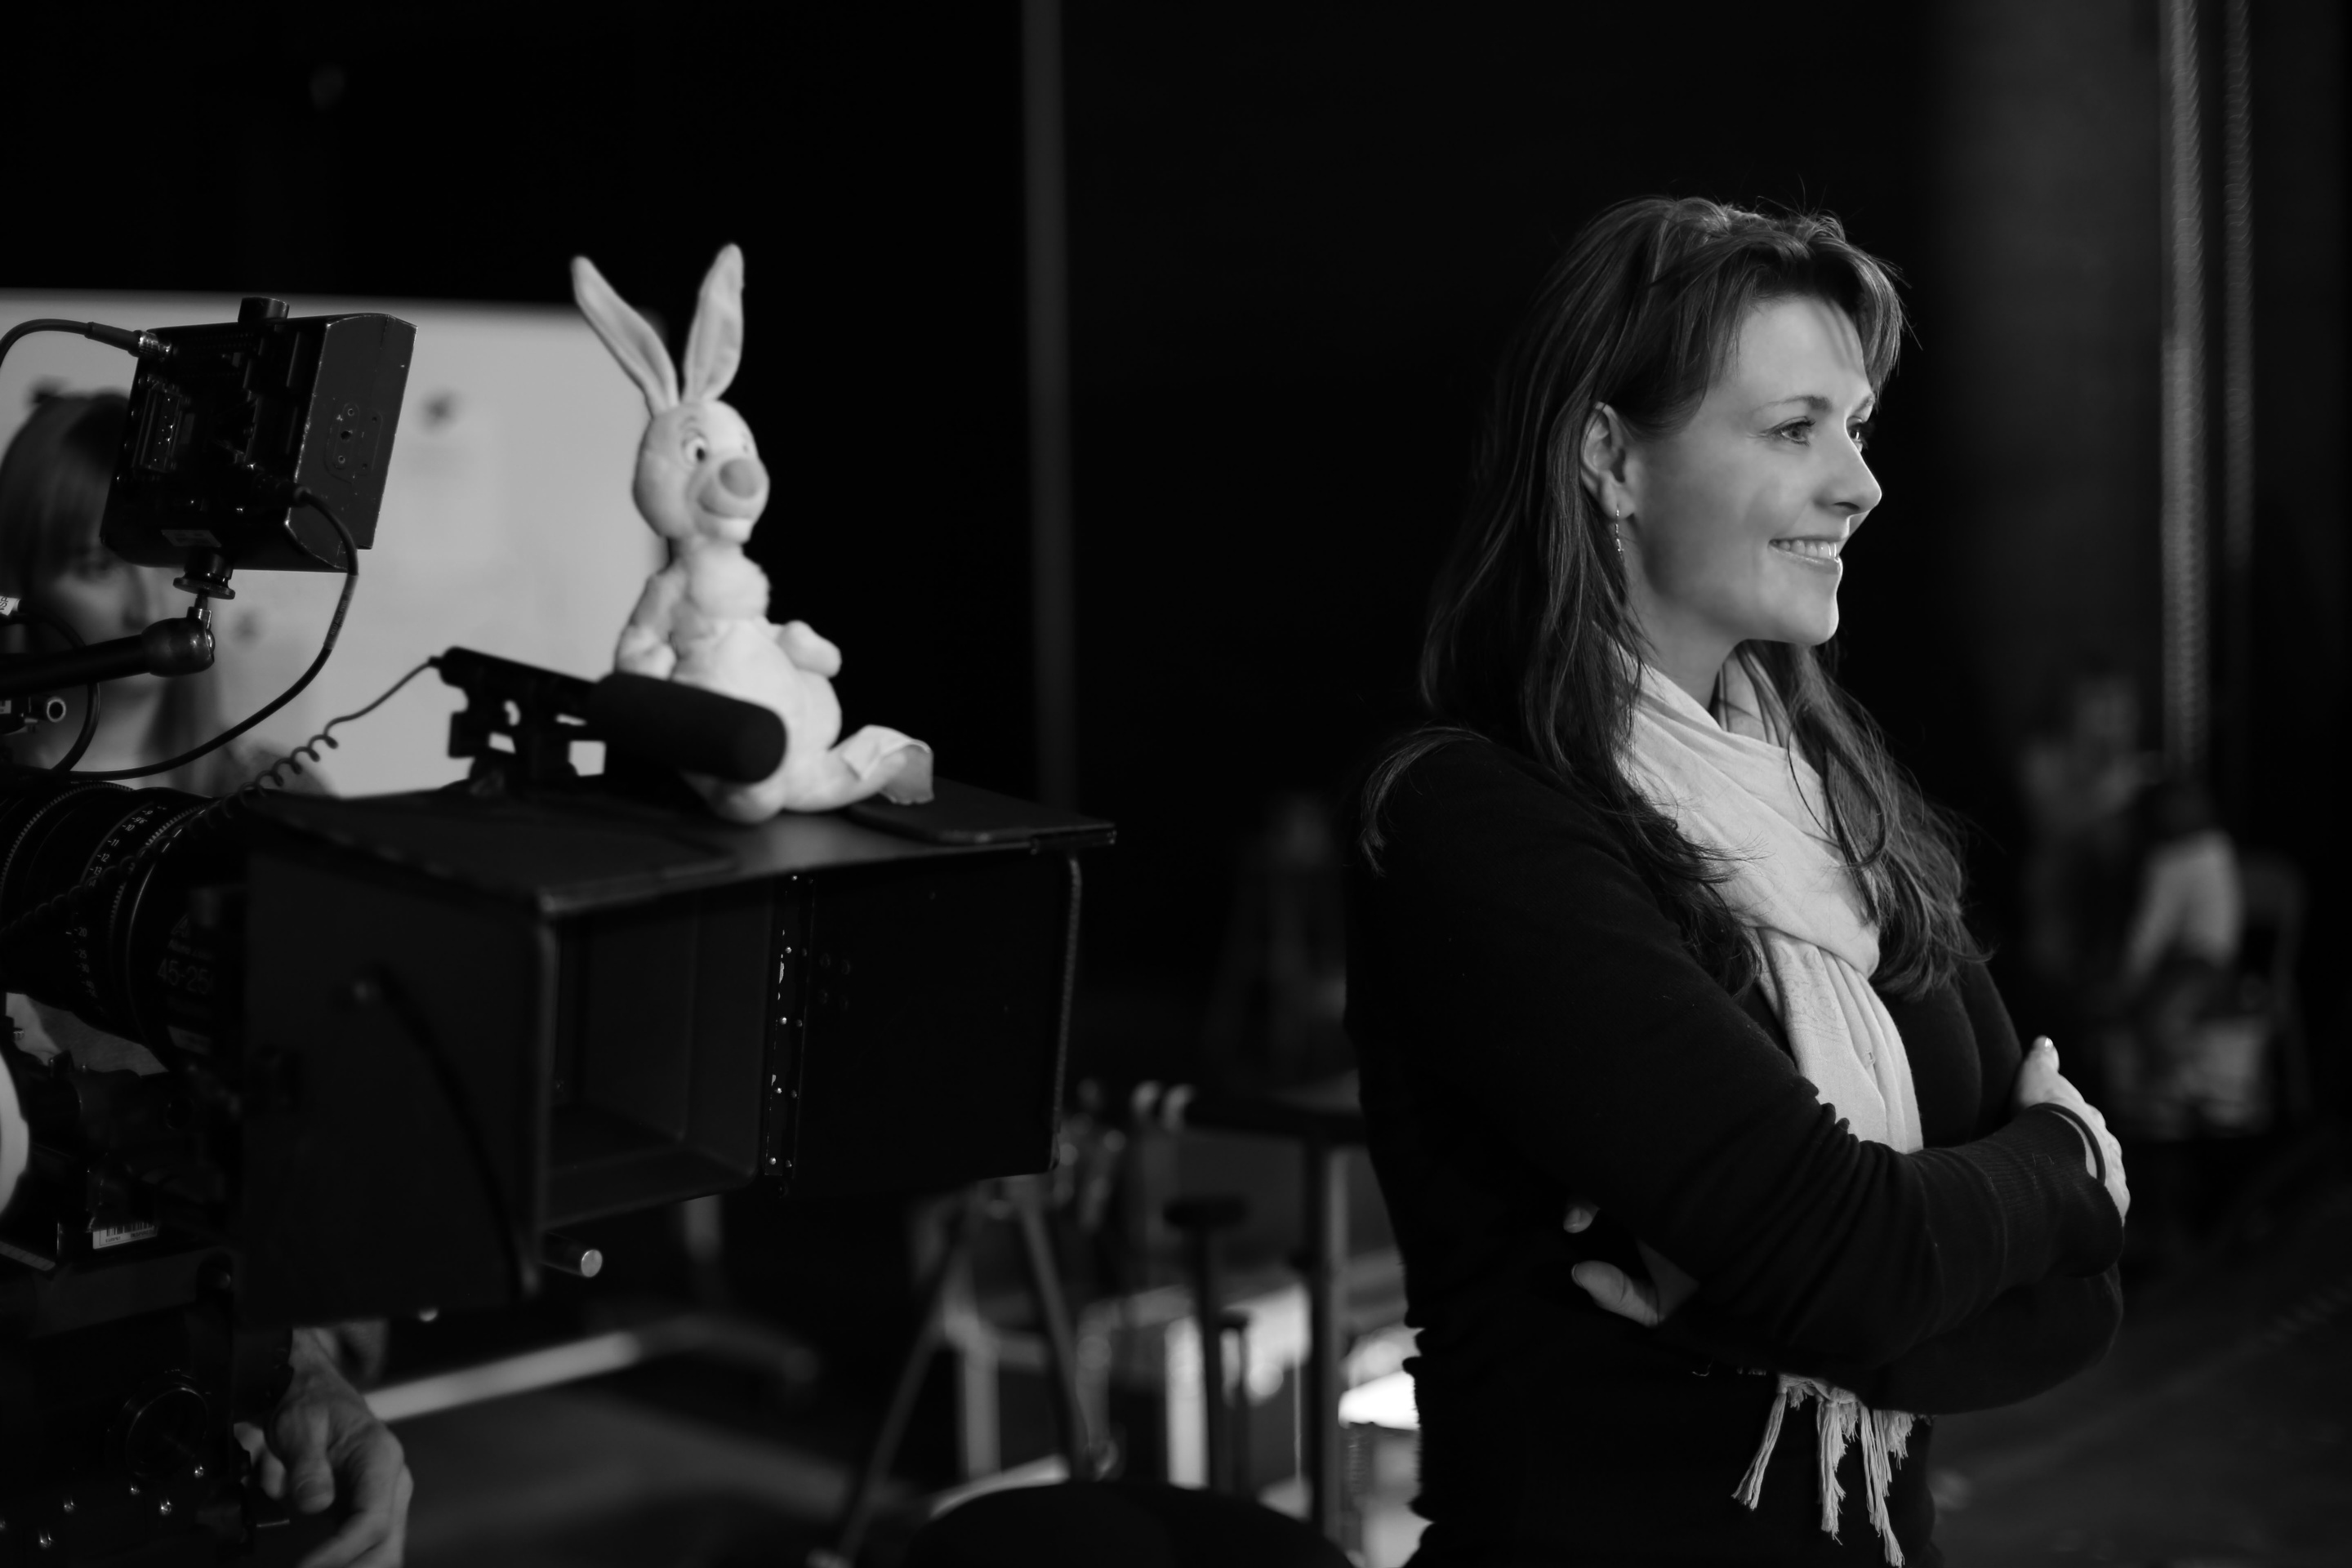 Amanda directing music video